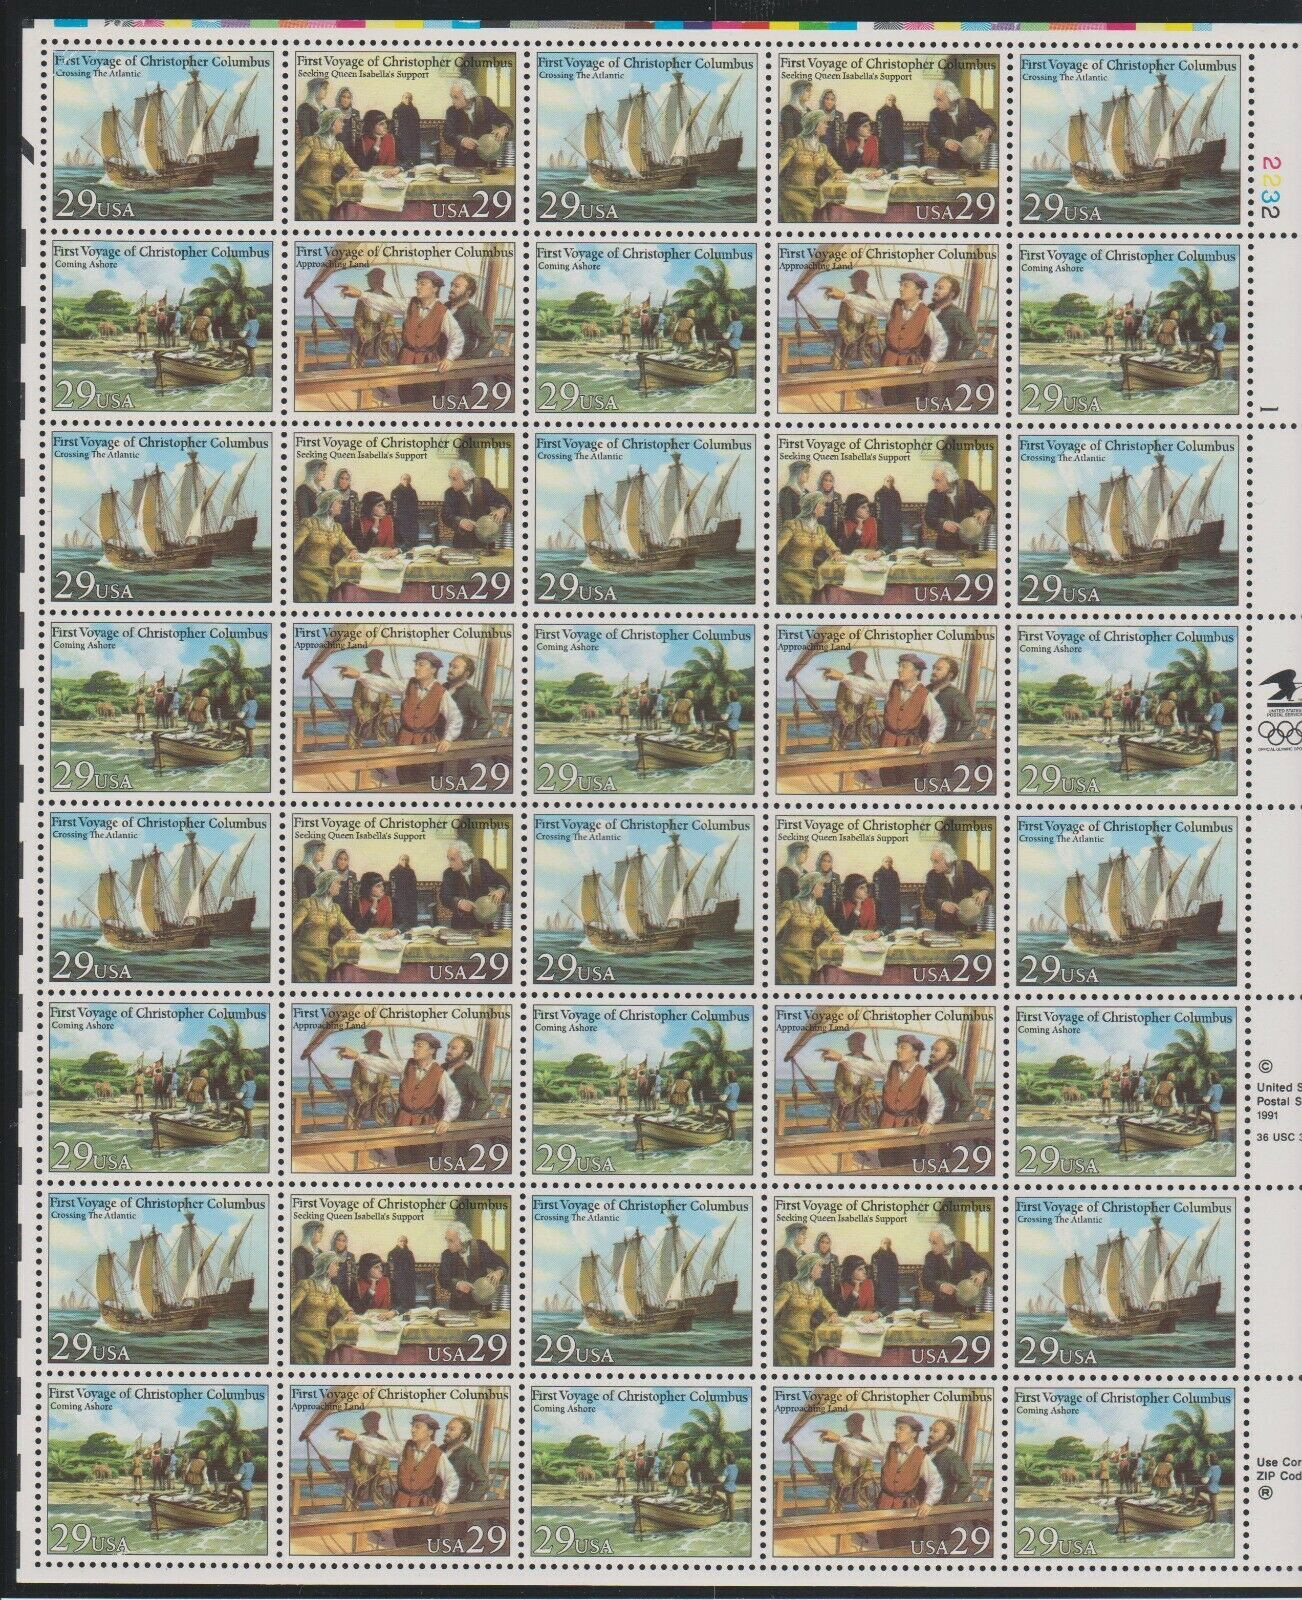 US Voyages Of Christopher Columbus Sheet Of 40 MNH Scott 2620-2623 - $22.94